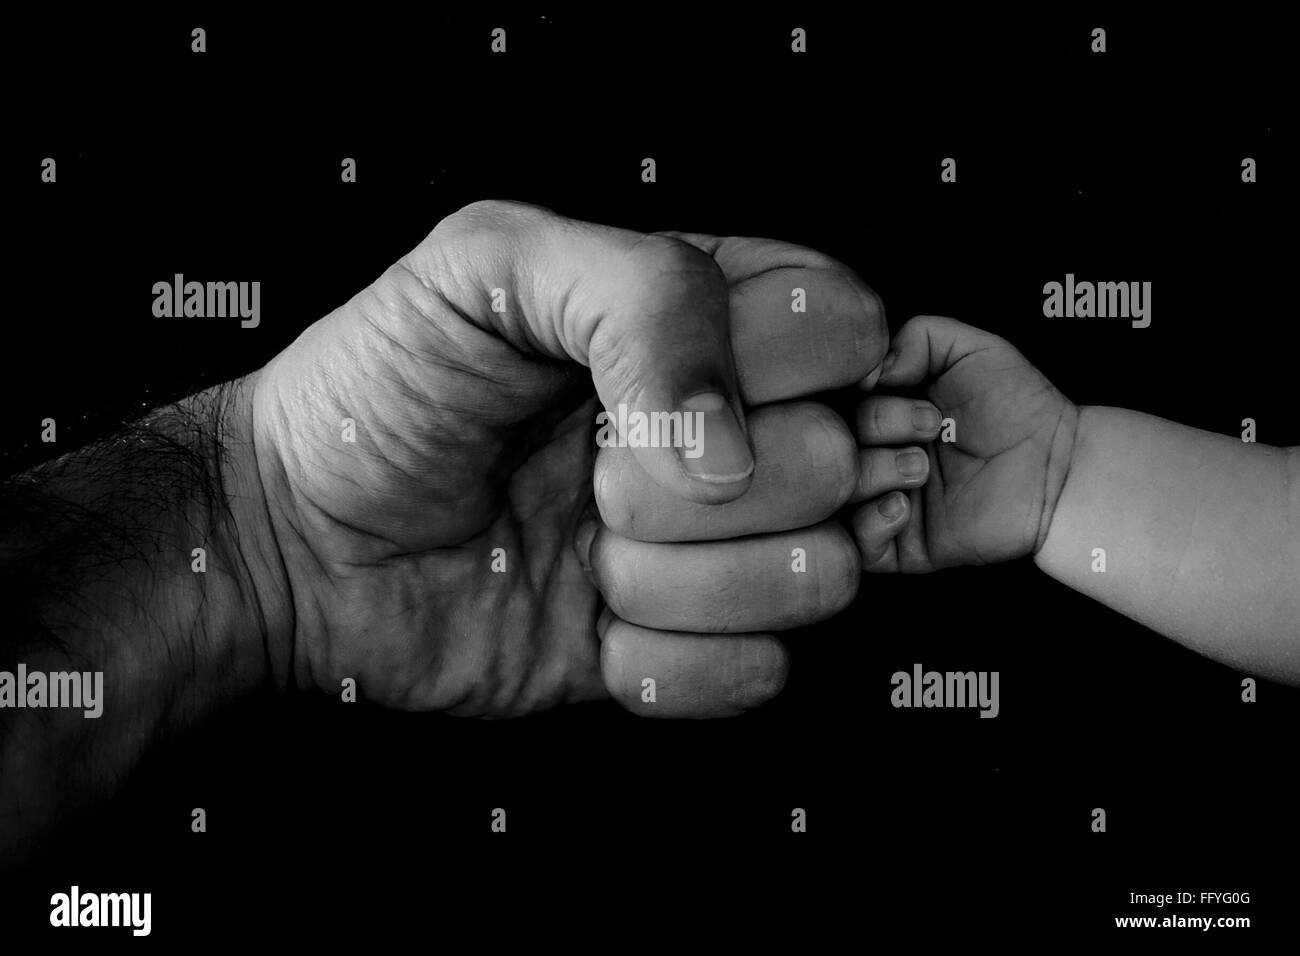 Cropped Image Of Father And Child Bumping Fist Against Black Background - Stock Image